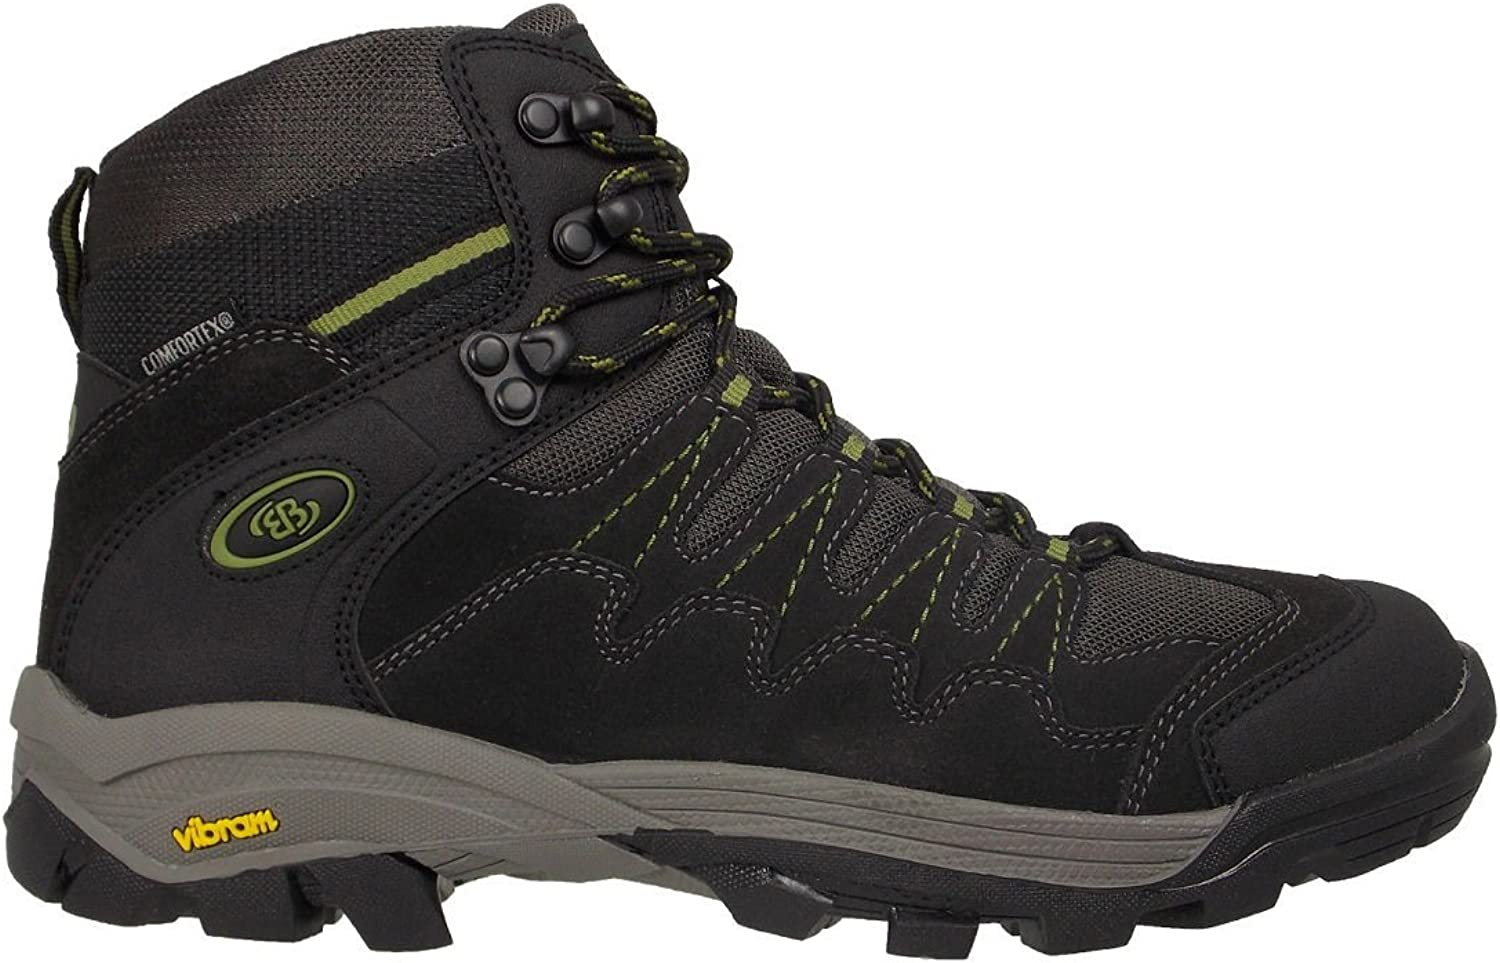 BRüTTING Men's - Outdoorboots BLIZZARD S 221097 - Grey, 10 UK